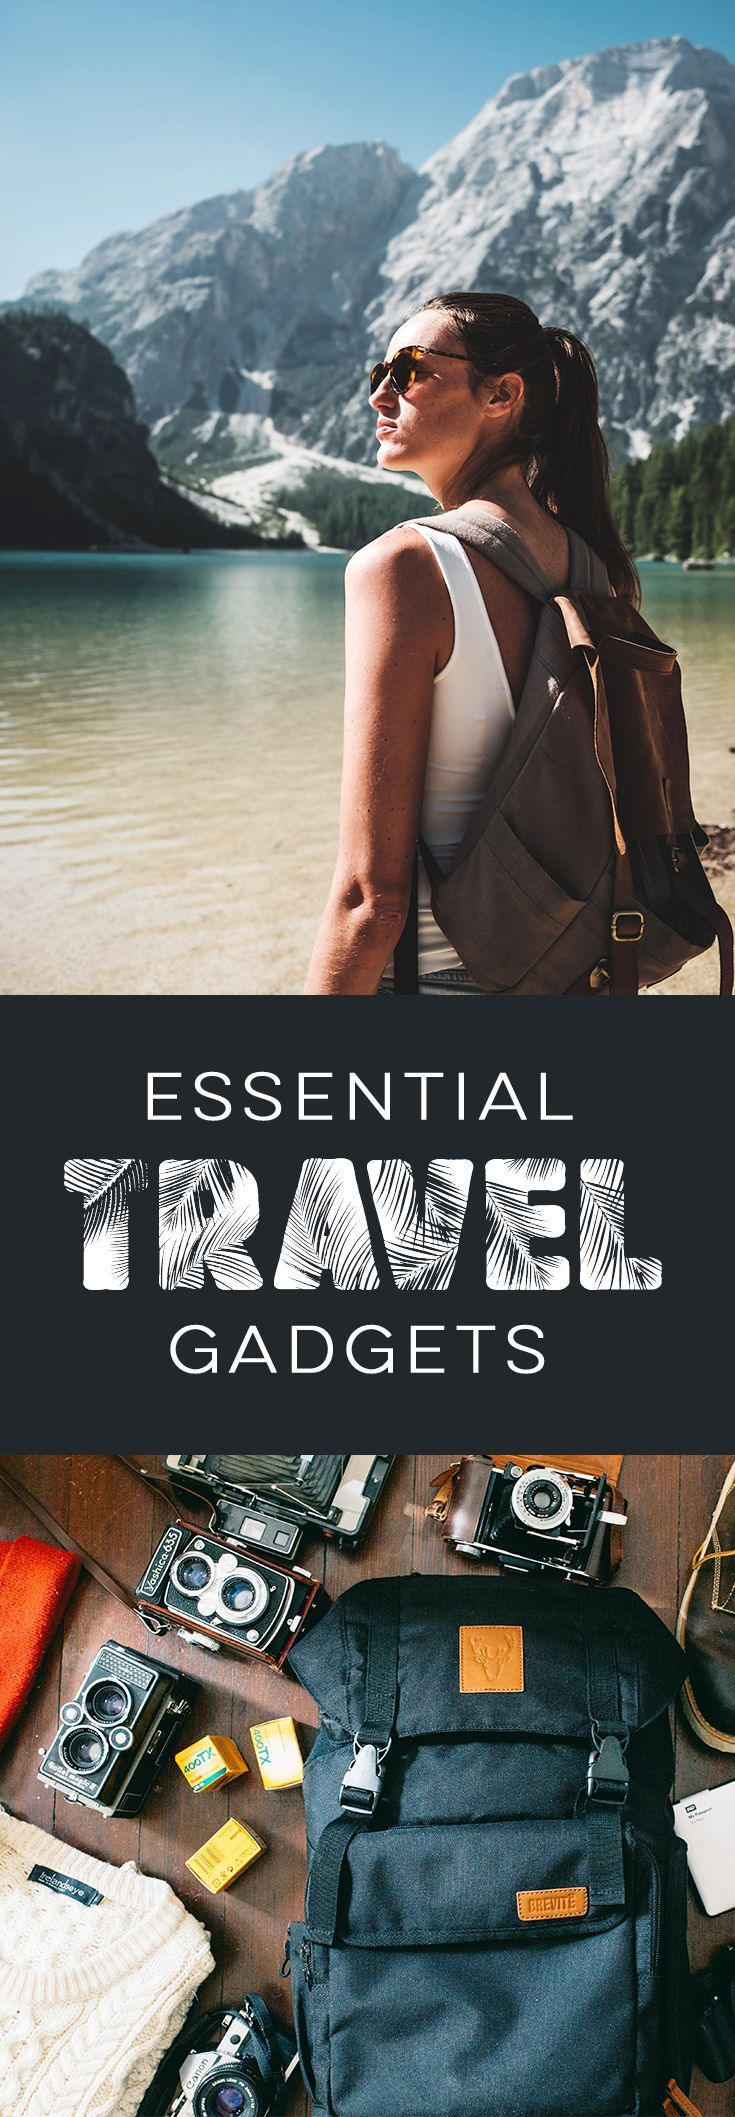 Travel gadgets, Travel gadgets 2018, Travel accessories, Travel Tech, Packing tips, Backpacking, GoPro, Travel Blog, Wanderlust